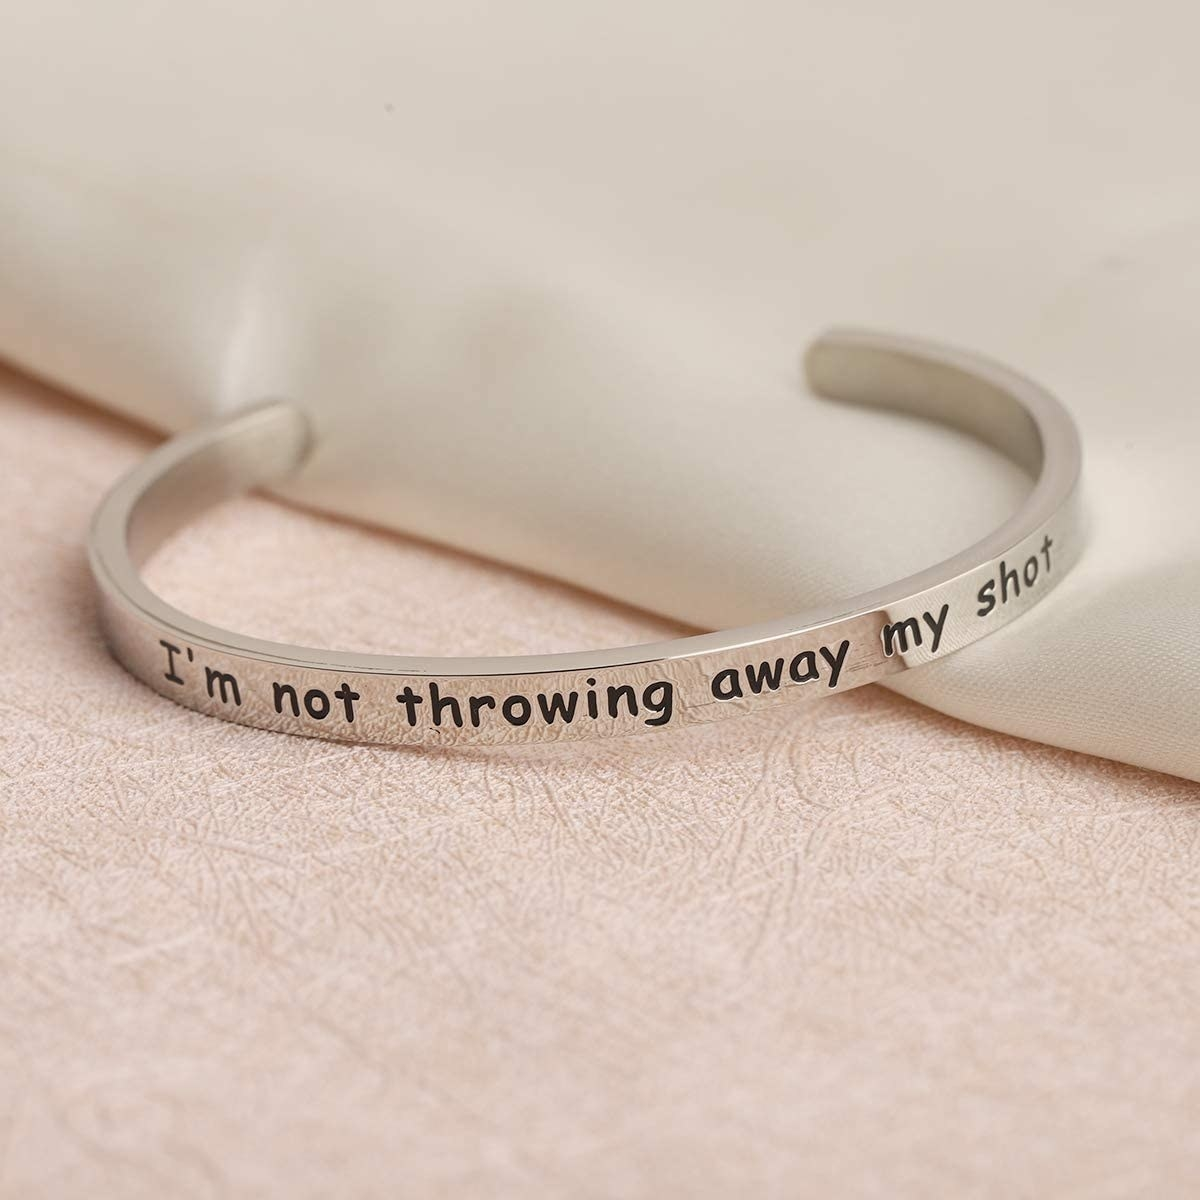 """The silver bracelet printed with """"I'm not throwing away my shot"""""""